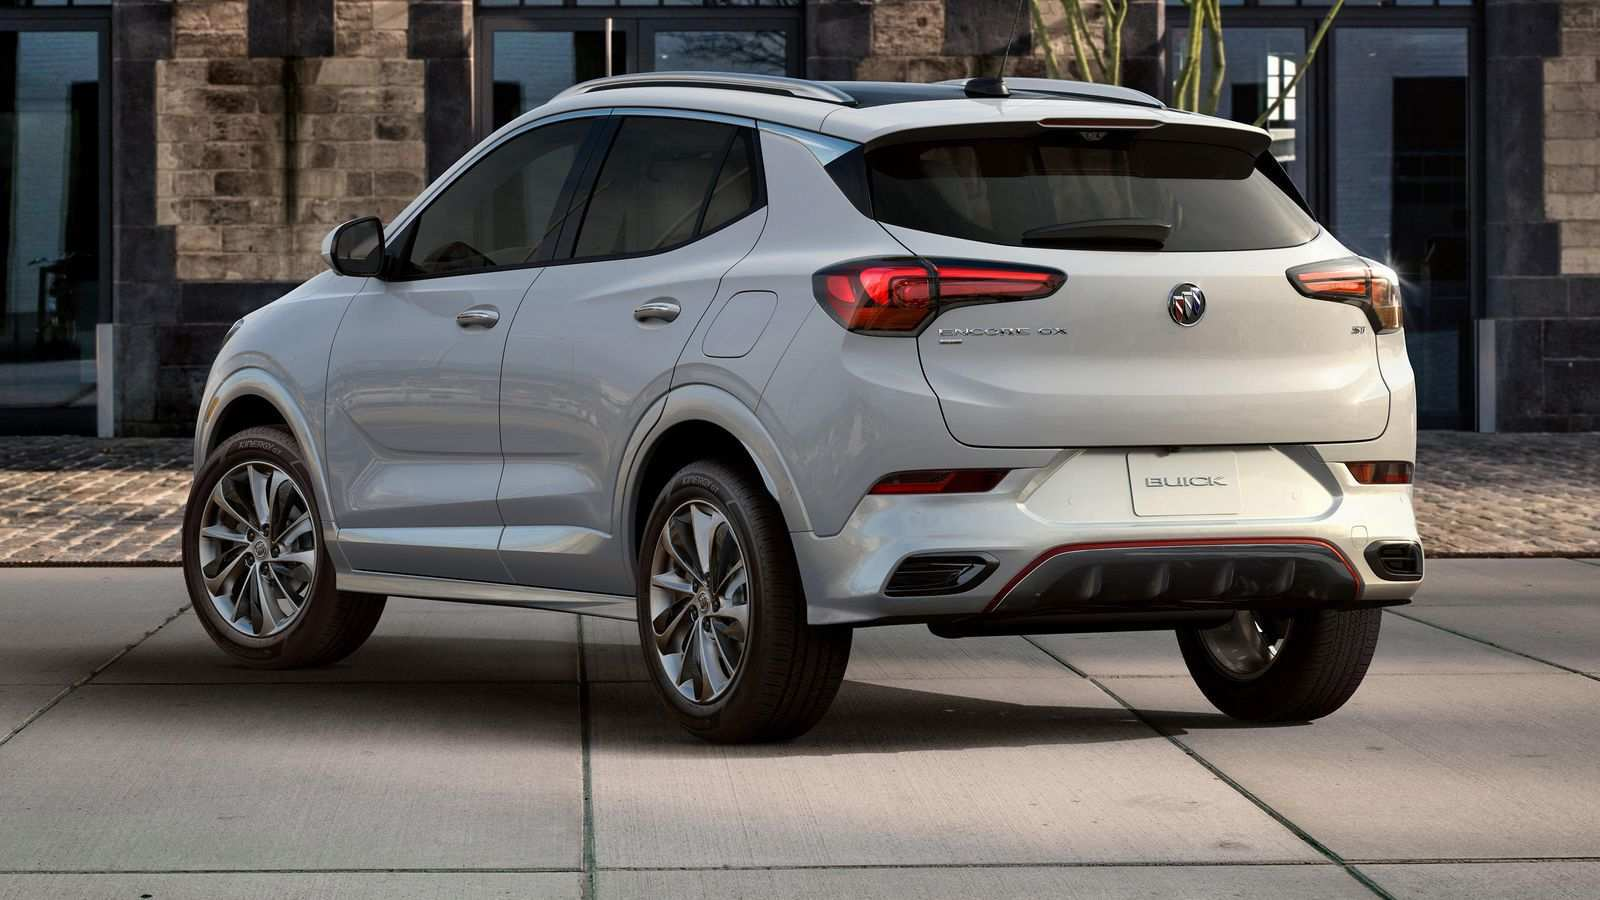 97 Best Review 2020 Buick Encore Pictures Images by 2020 Buick Encore Pictures